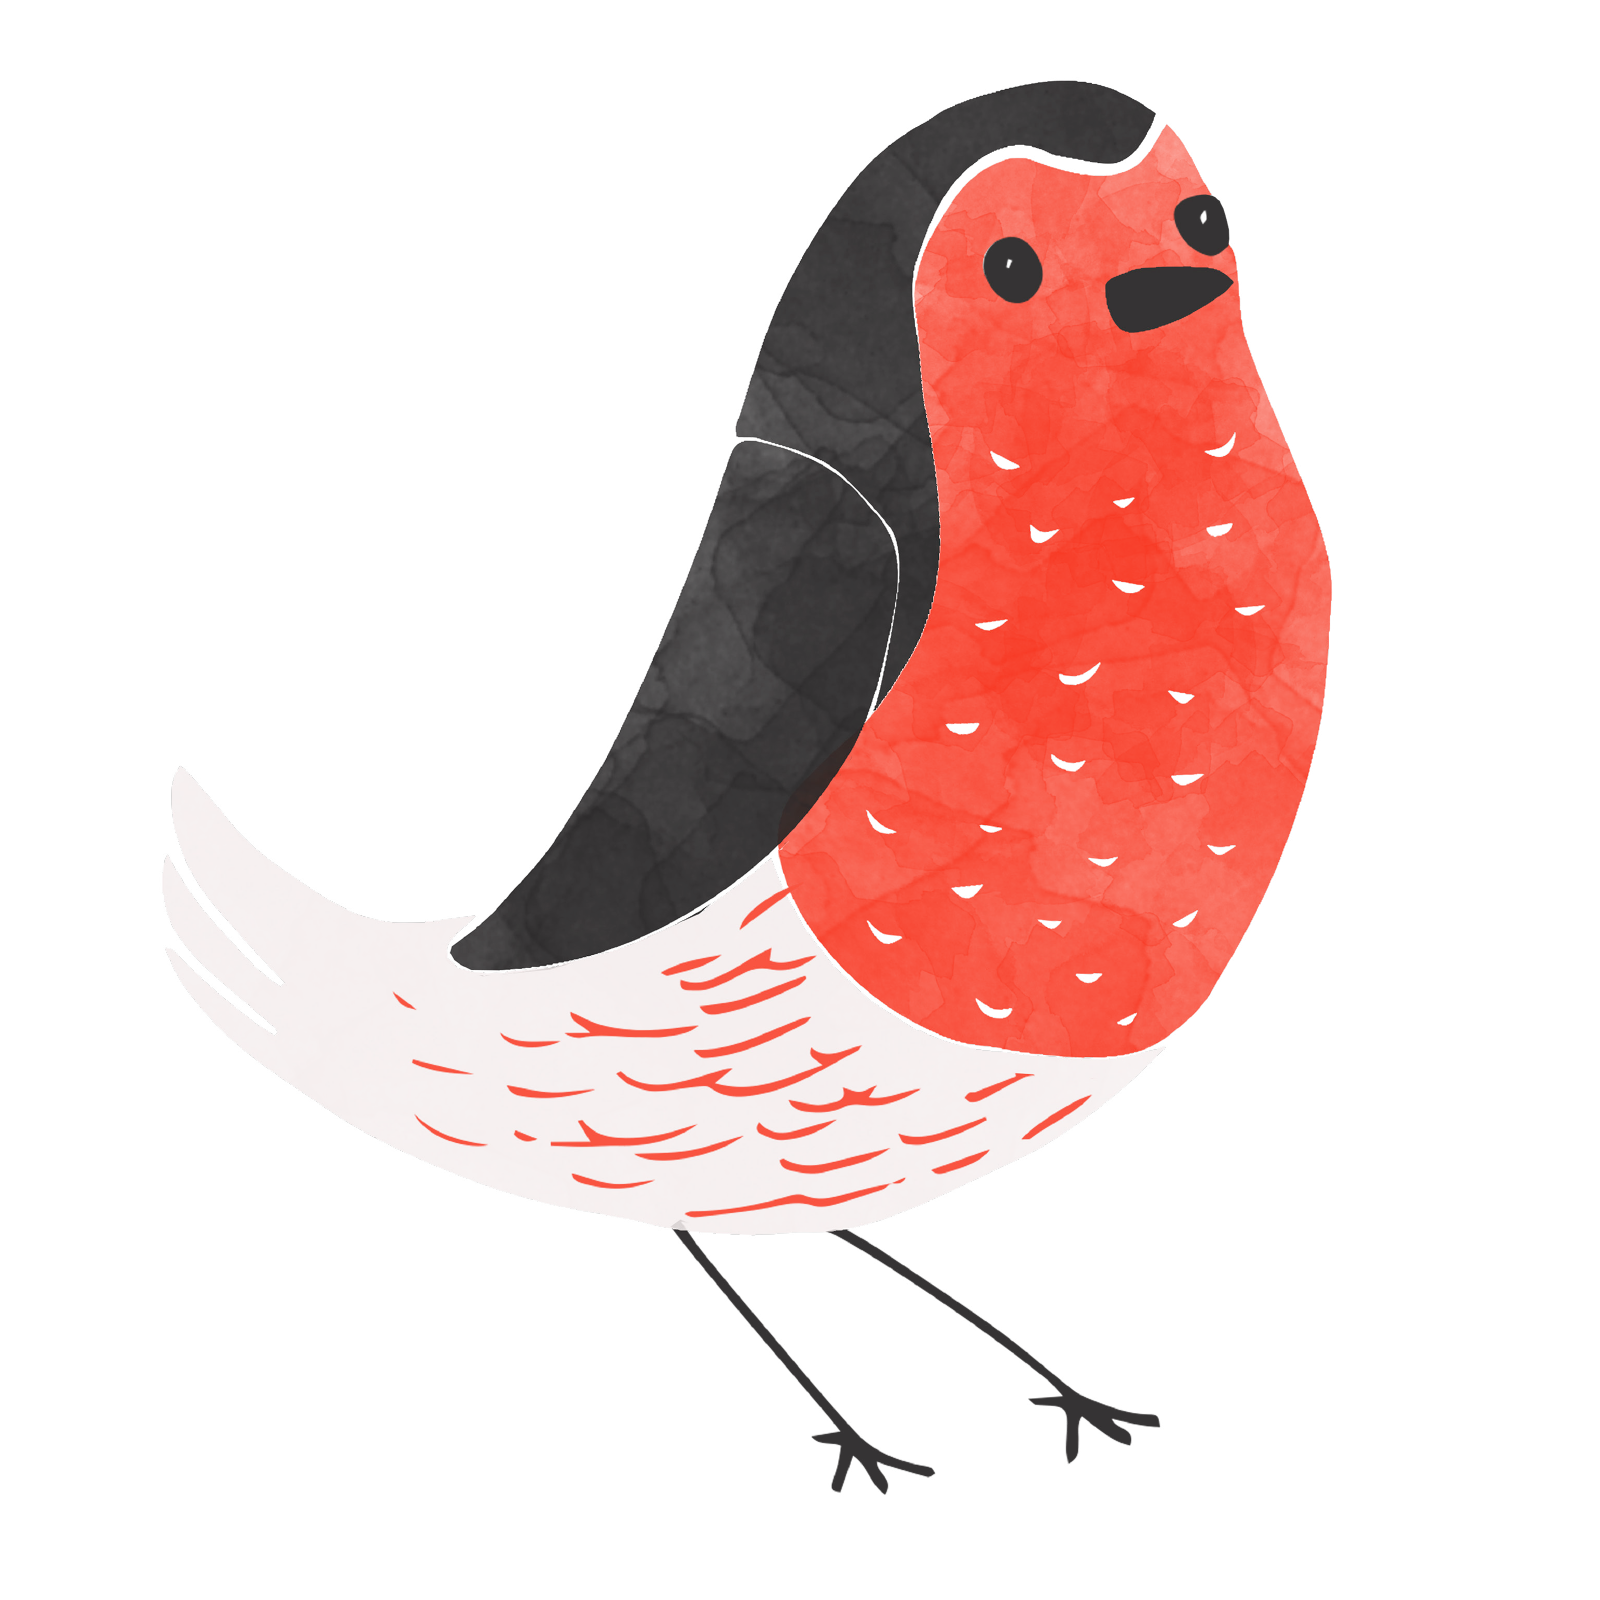 An illustration of a robin with a large red chest.